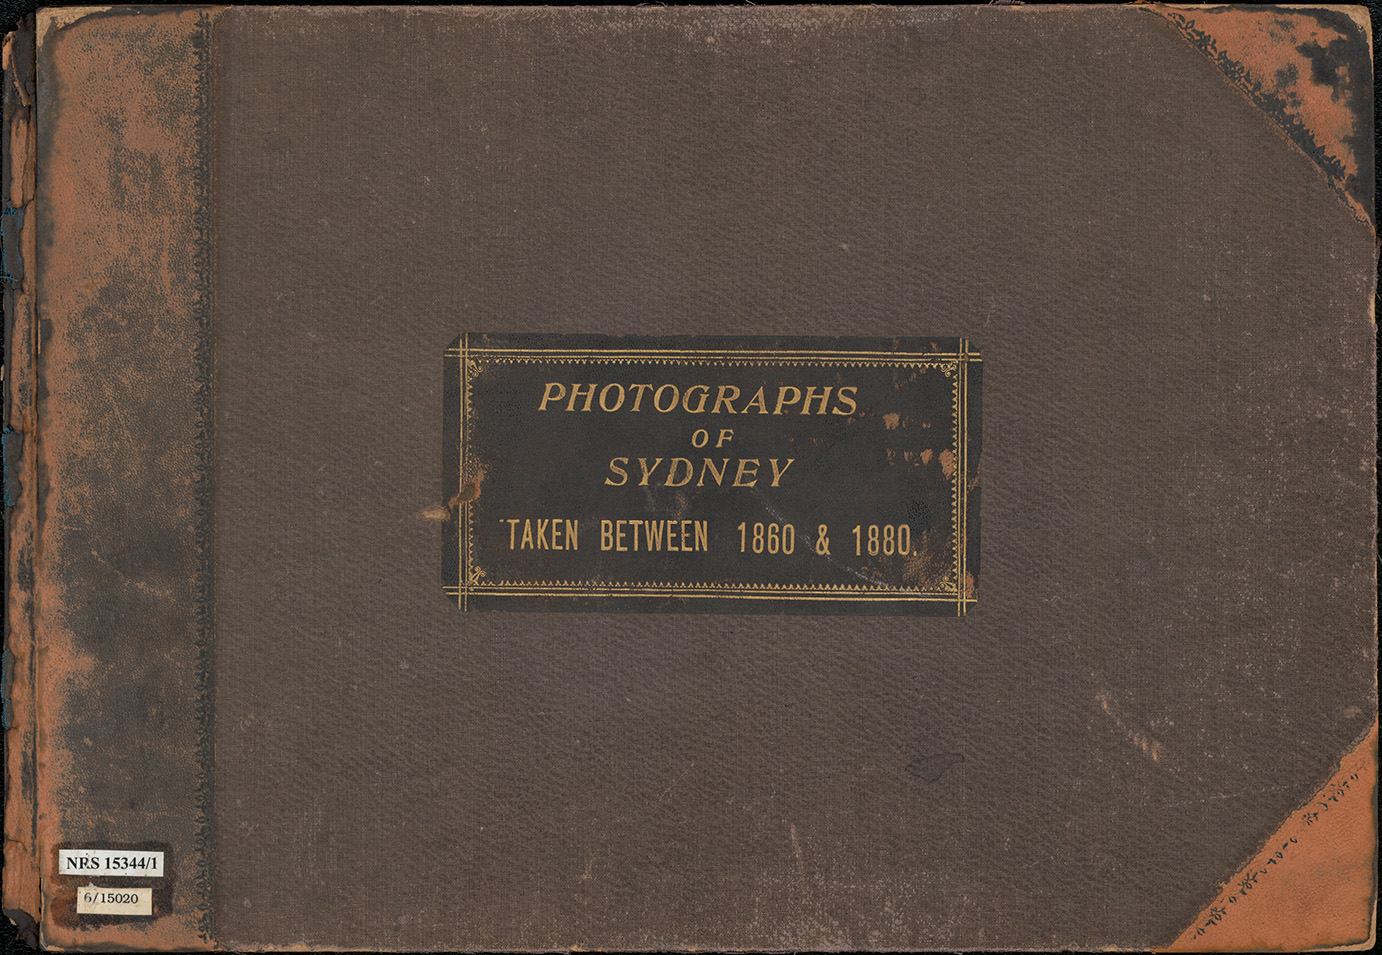 Photographs of Sydney taken between 1860 and 1880 [album cover]